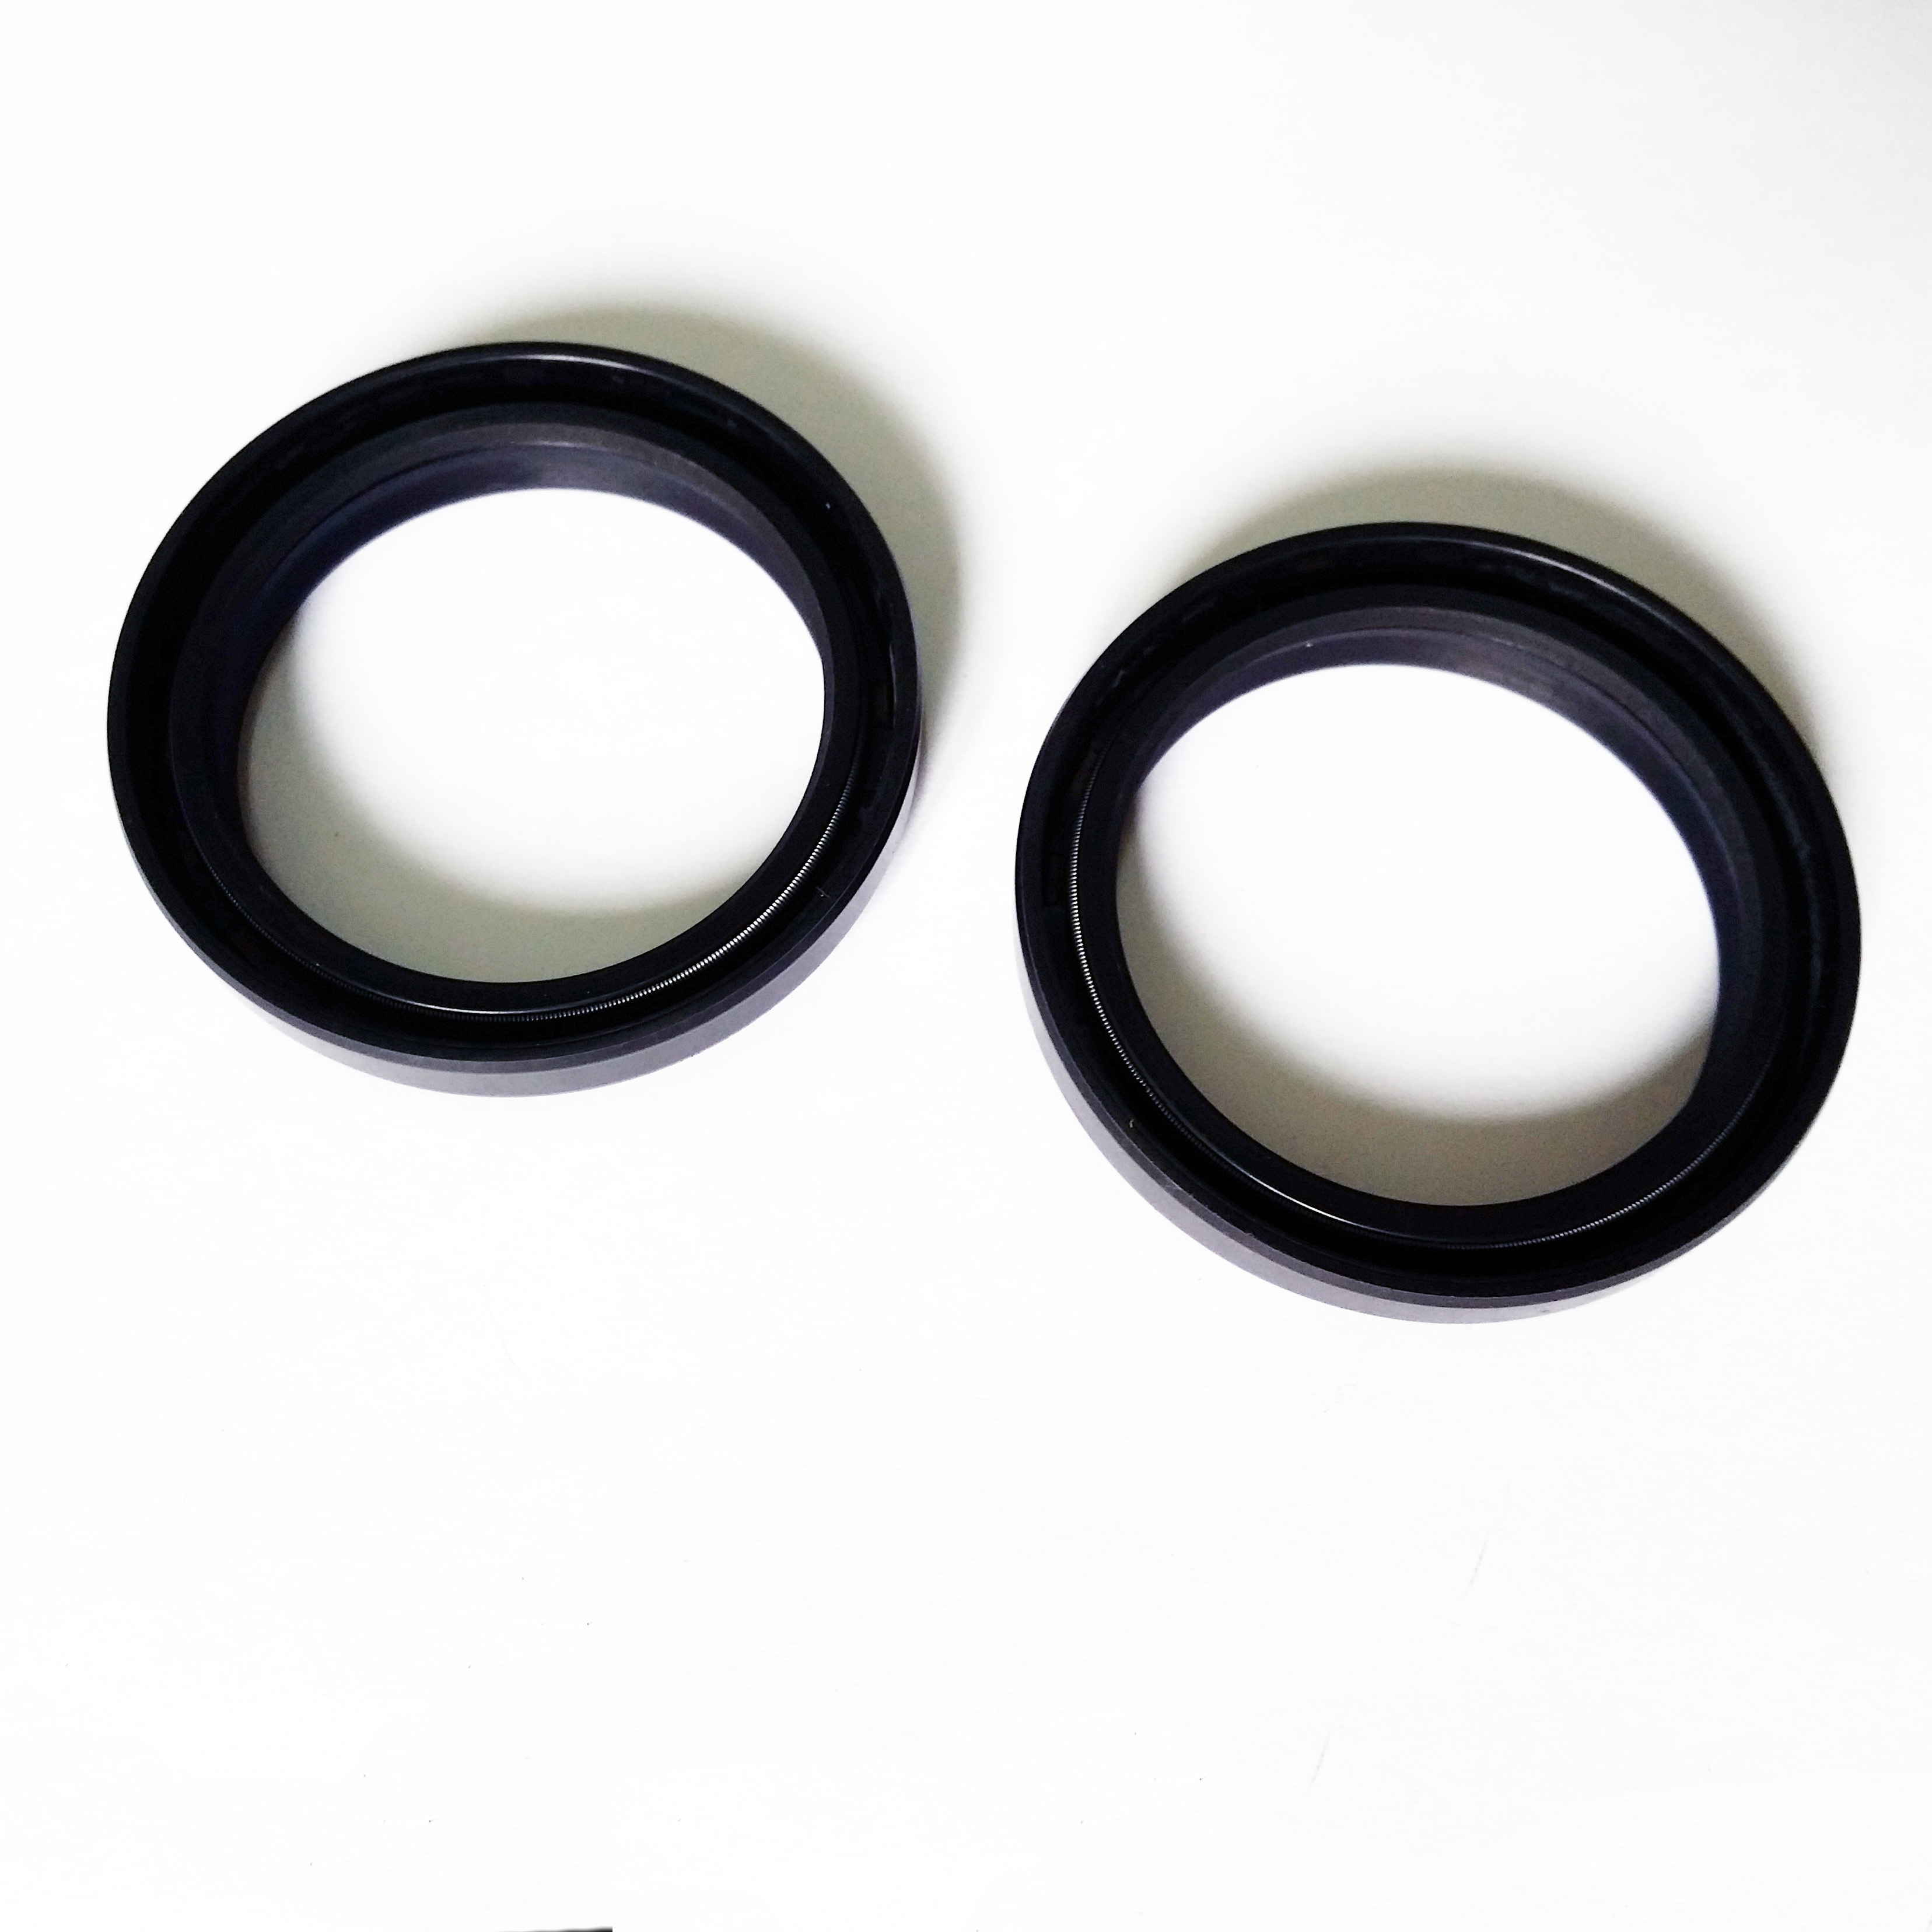 K-Tech Honda CR500 1984-1988 NOK Front Fork Oil Seals 43x54x11mm